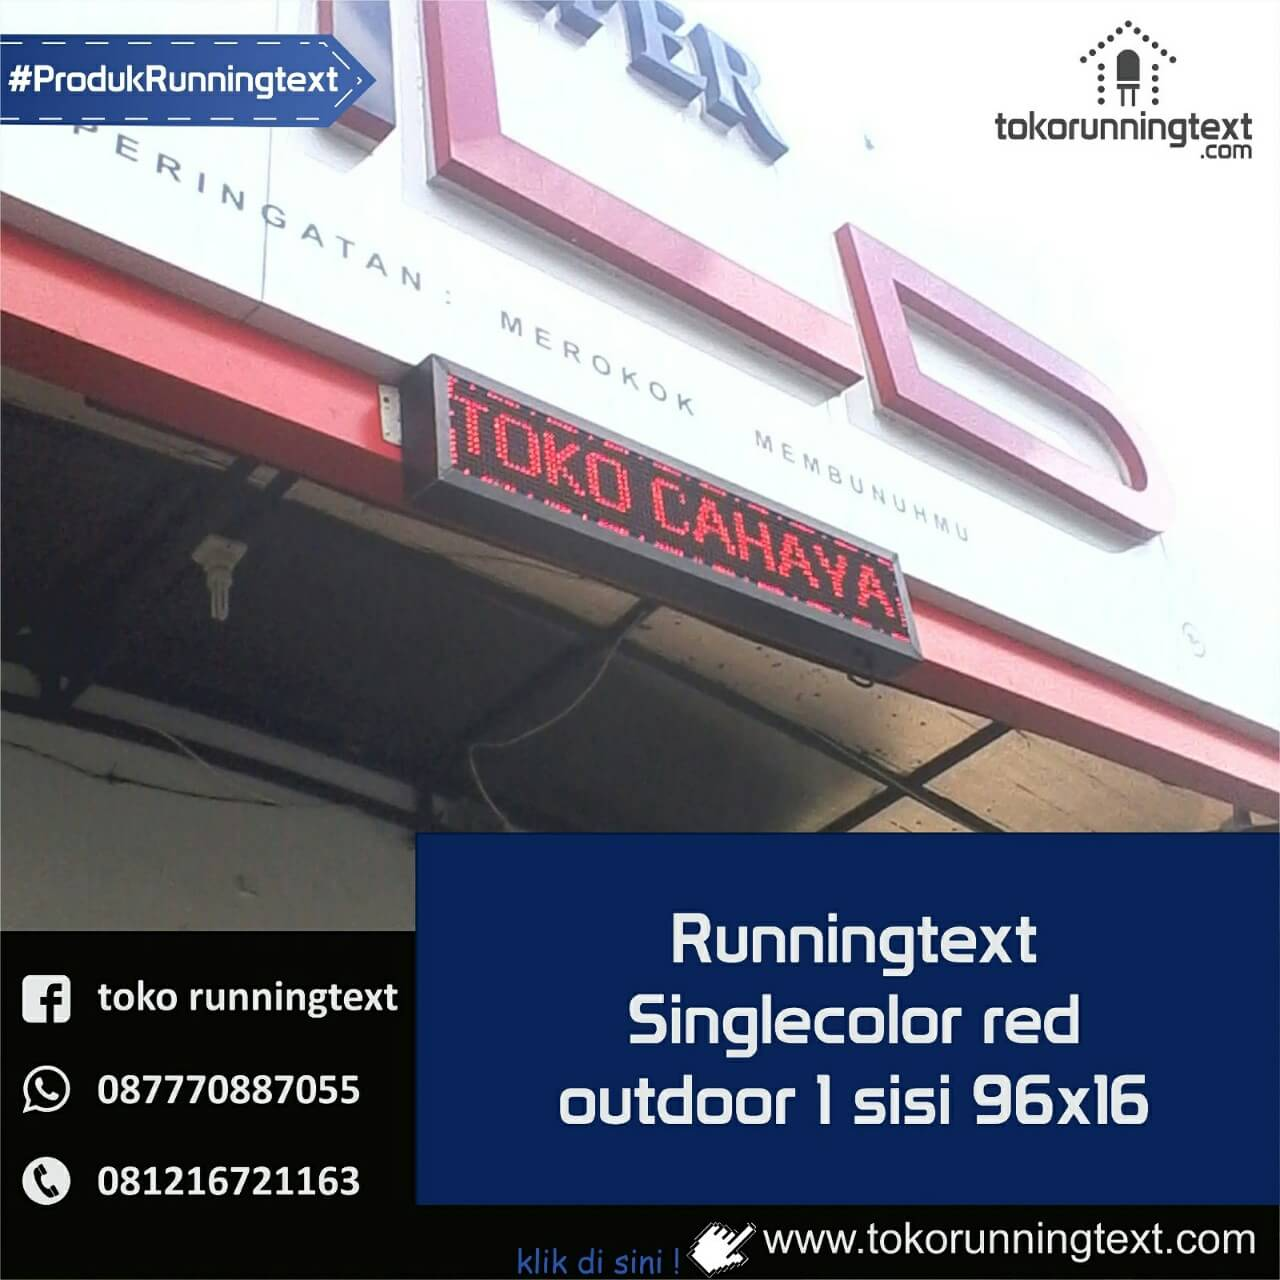 Runningtext single color Red, Outdoor 1 sisi 96x16